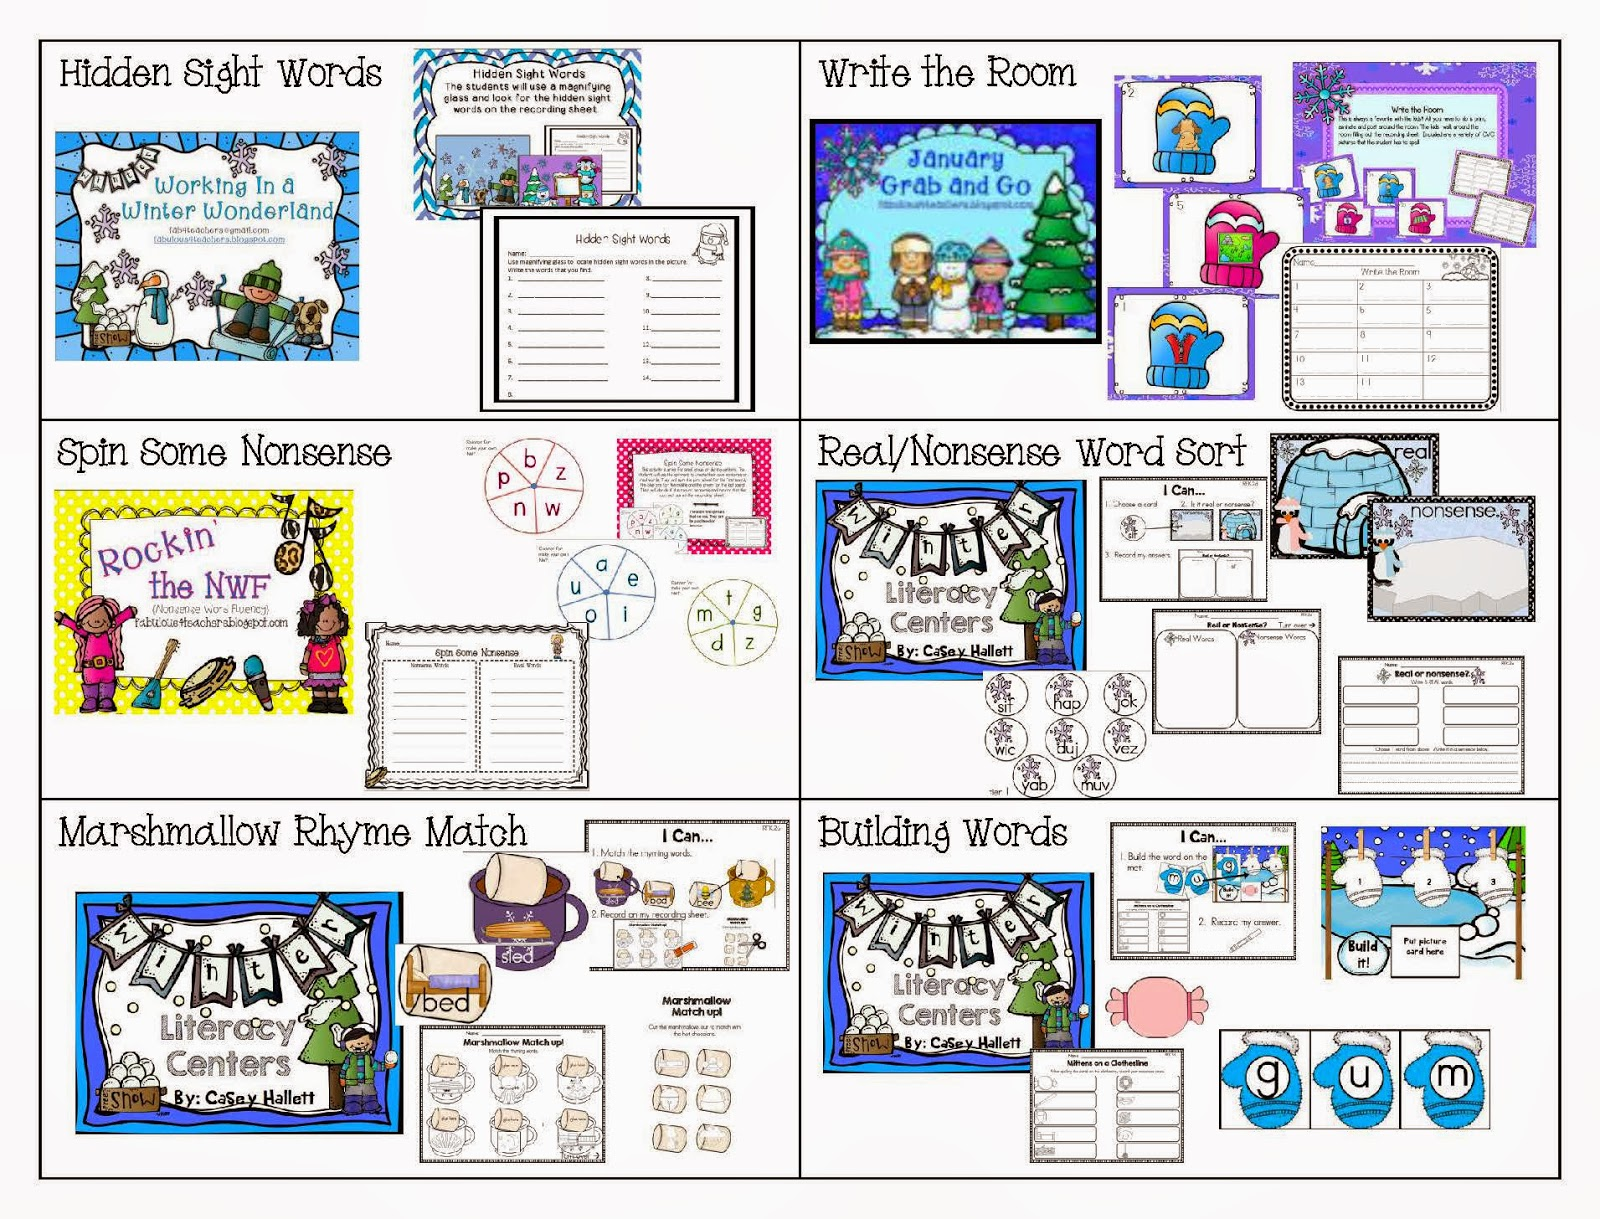 Fab4 Lesson Plans for the Week of February 3, 2014